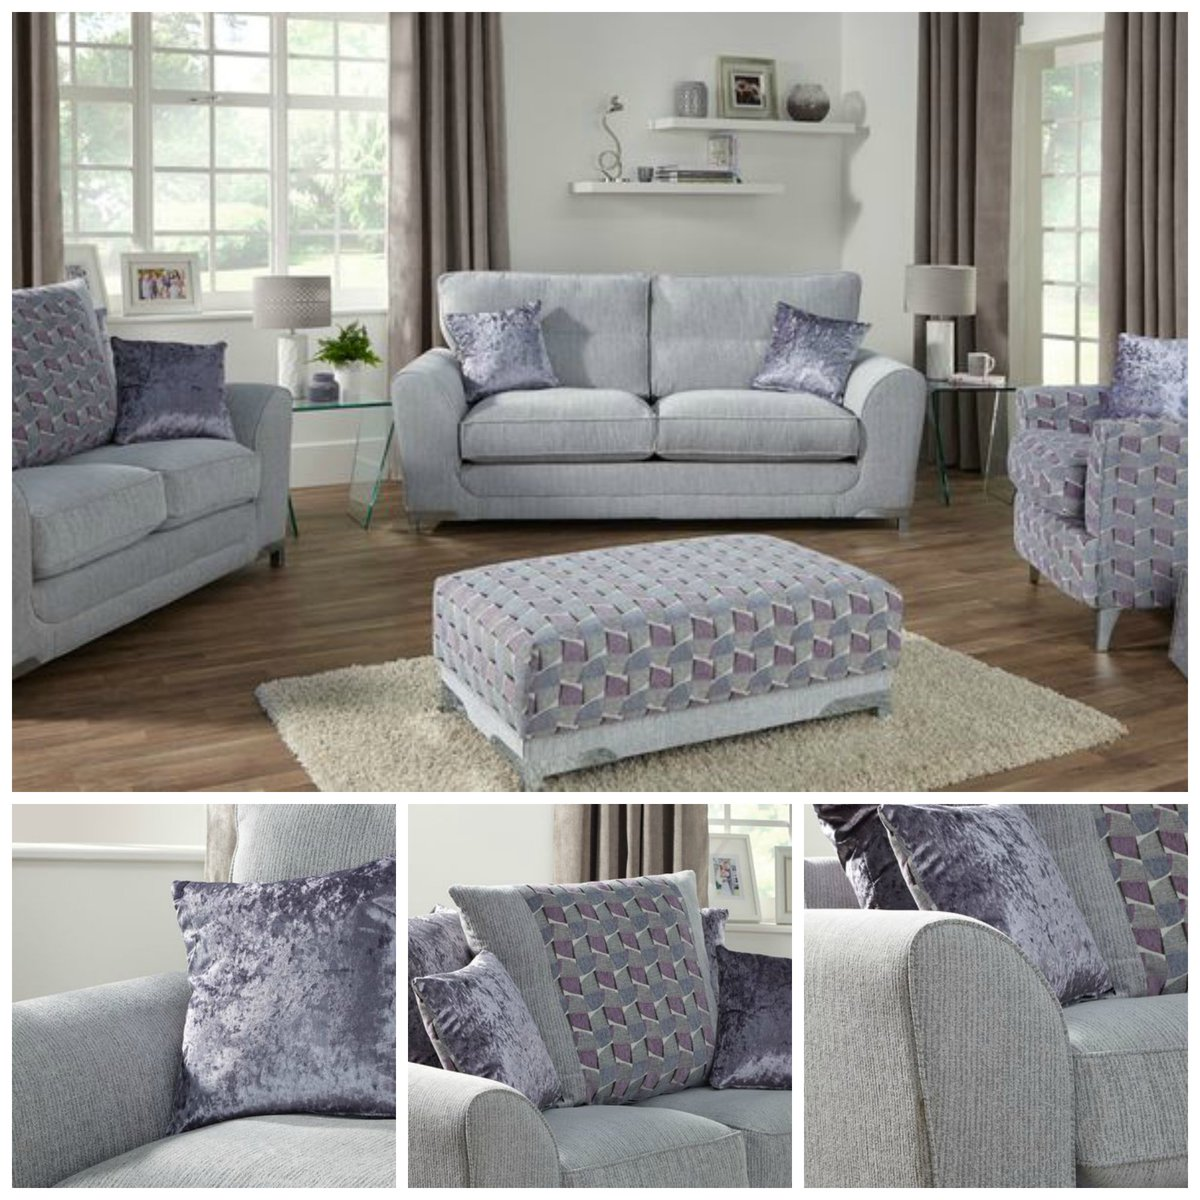 Scs Sofas On Twitter The Astrid Sofa Range Combines Clic Designs And Luxurious Fabrics Adding A Glamorous Touch To Any Living Room